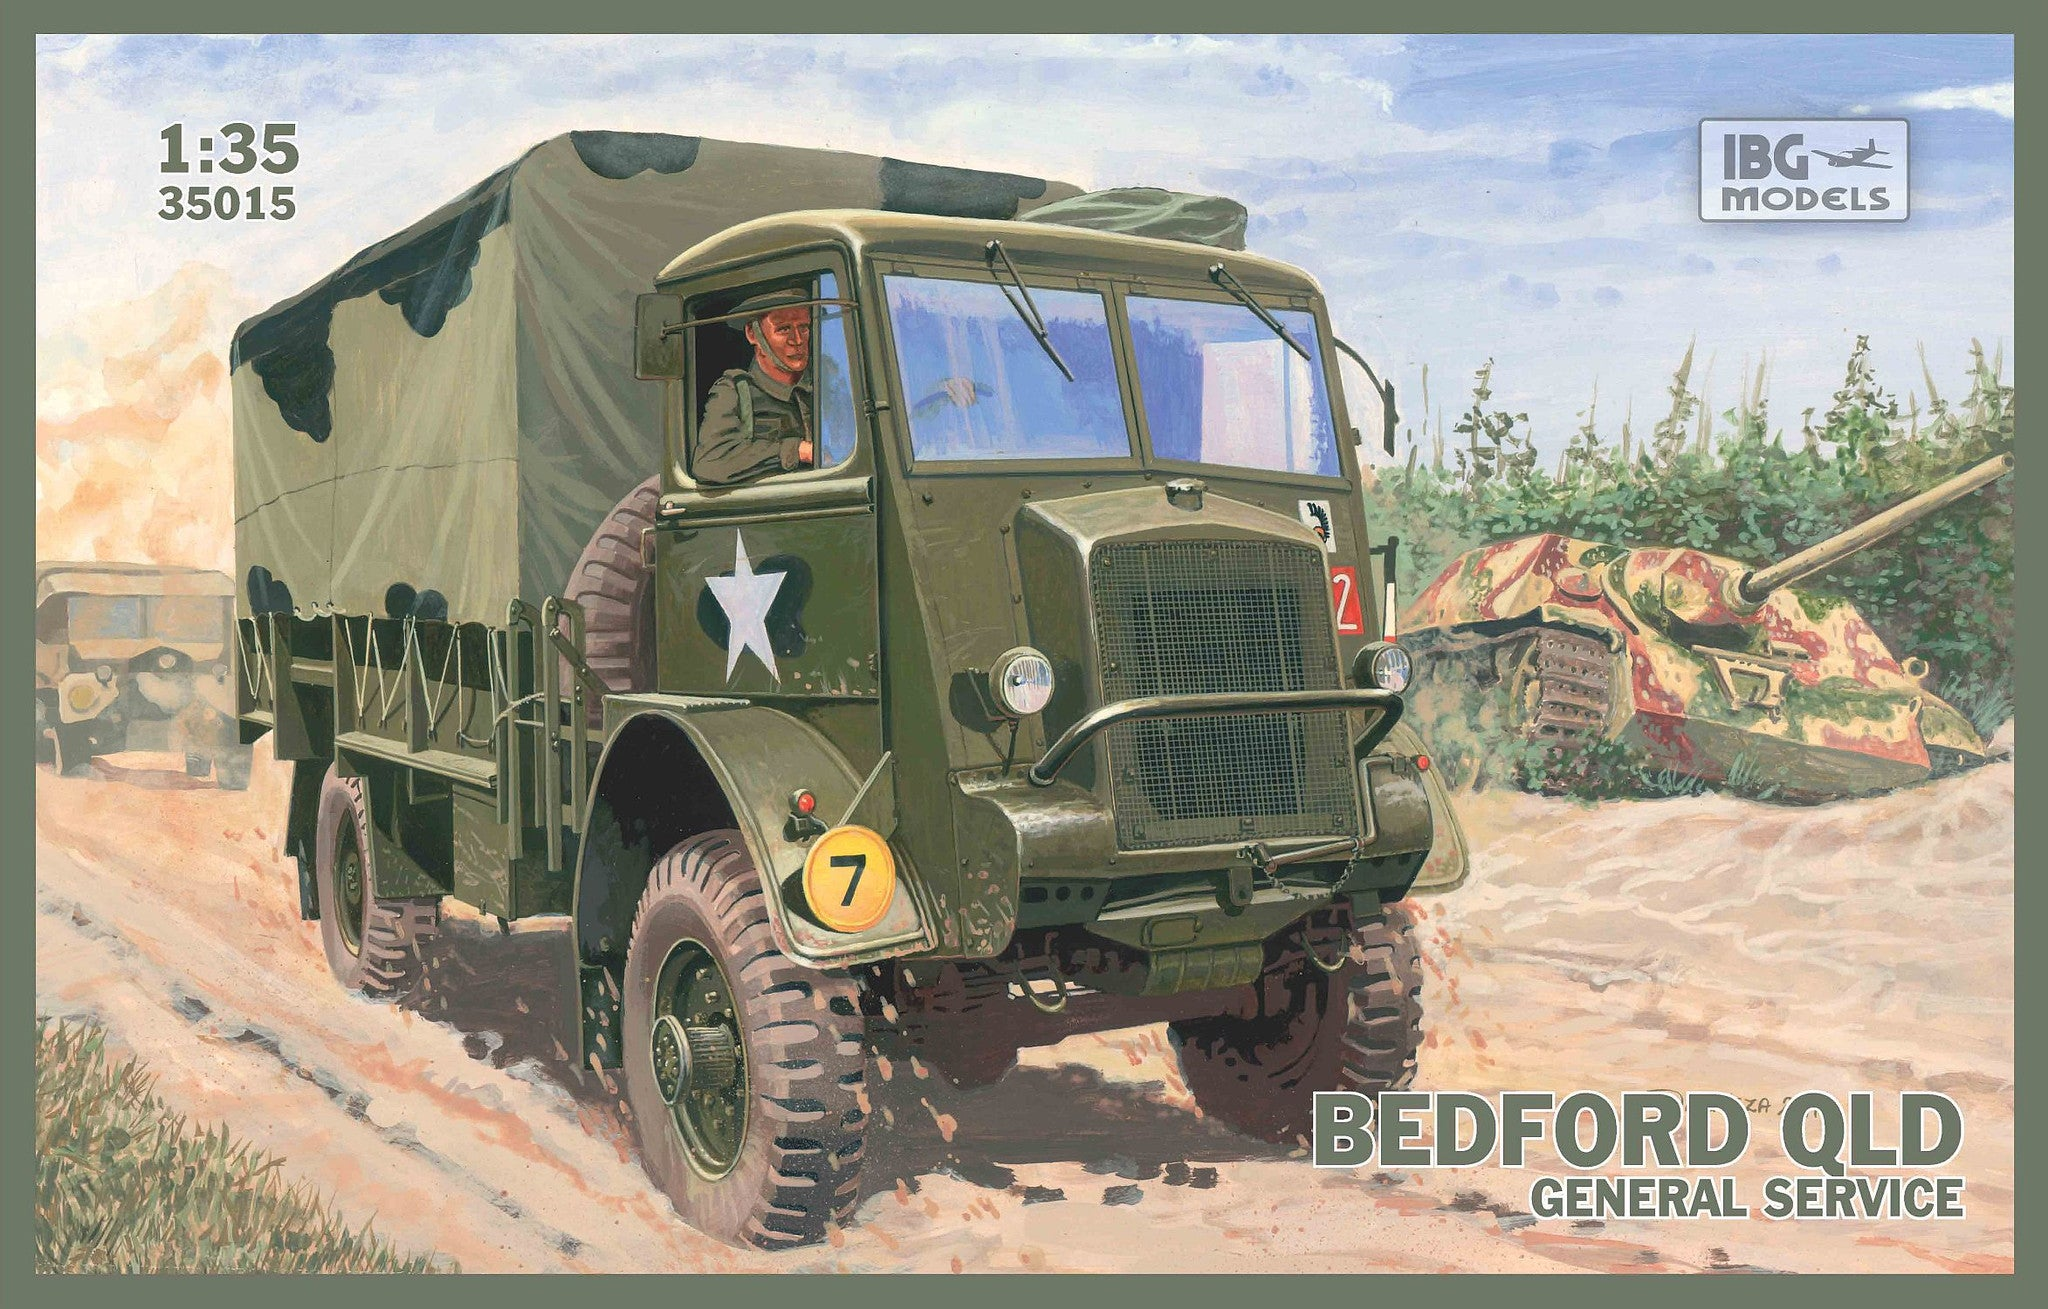 IBG Military 1/35 Chevrolet C15A Personnel Lorry (No. 13 & No. 12 Cab Versions) Kit